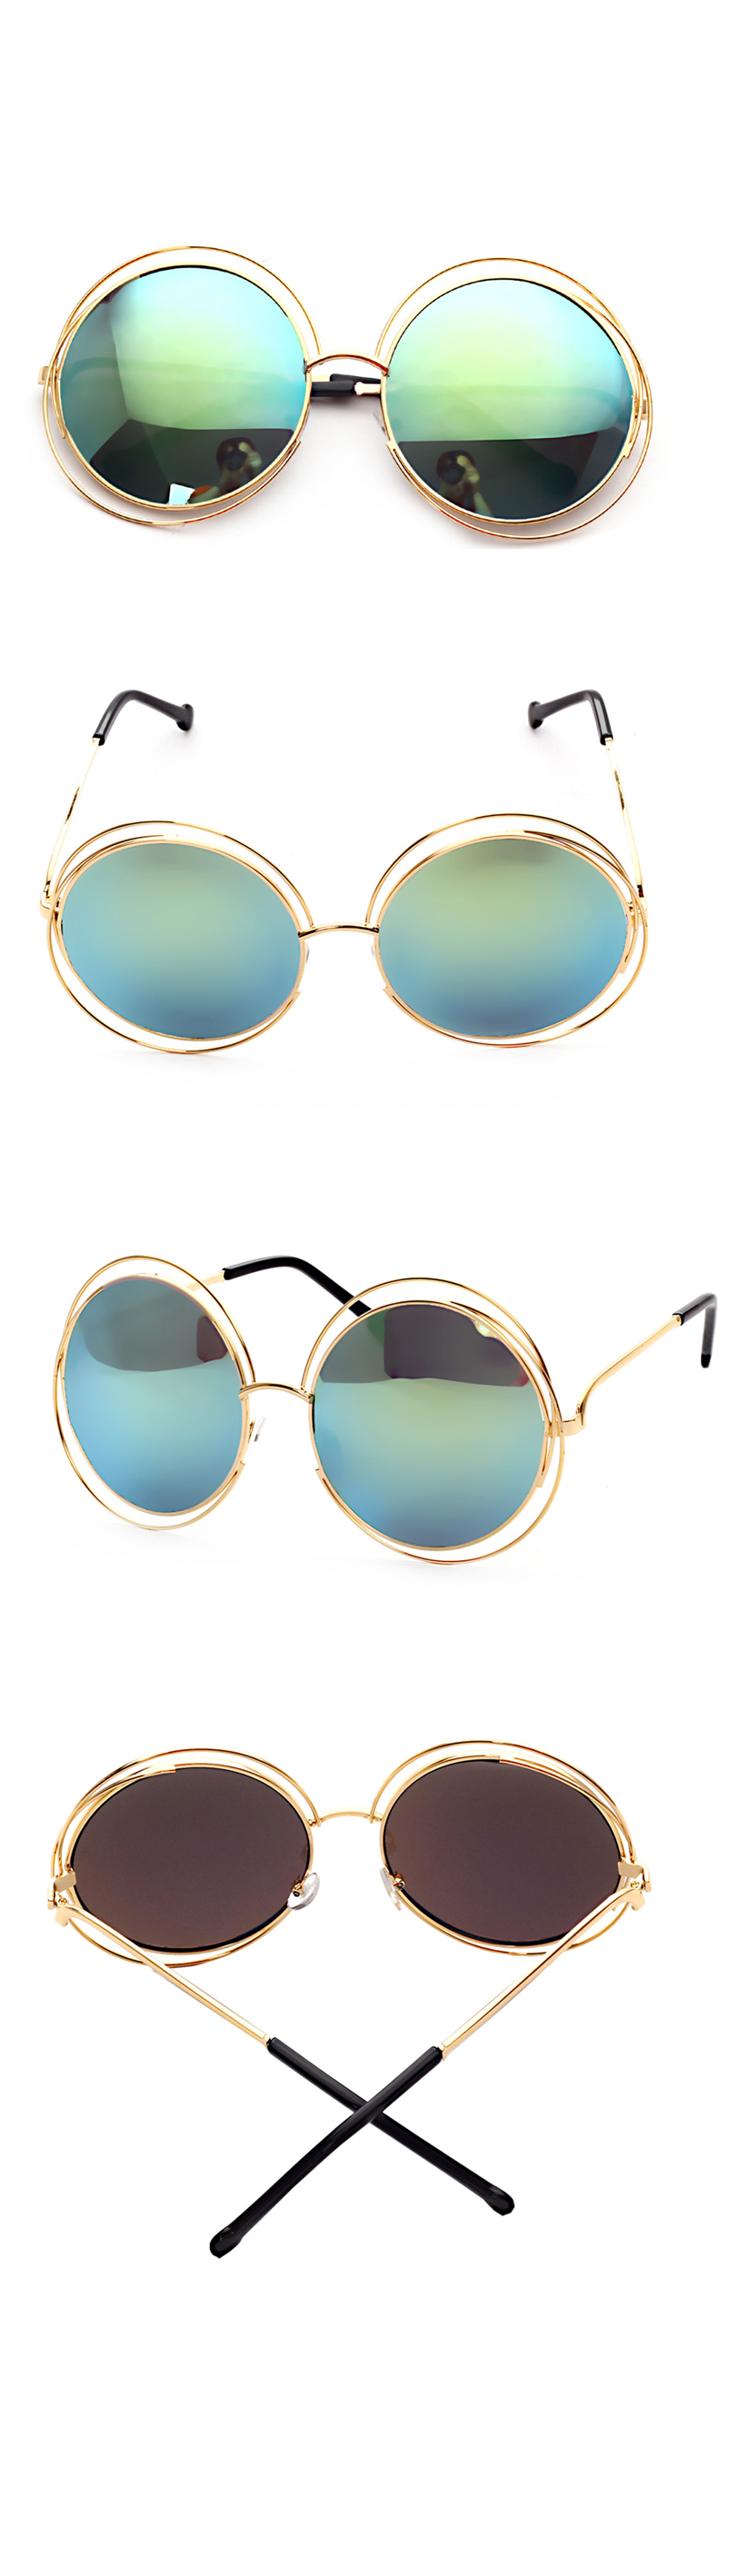 Designer Glasses Authentic Mirror Oversize Acetate Round Hollow Double Coil Women Sunglasses